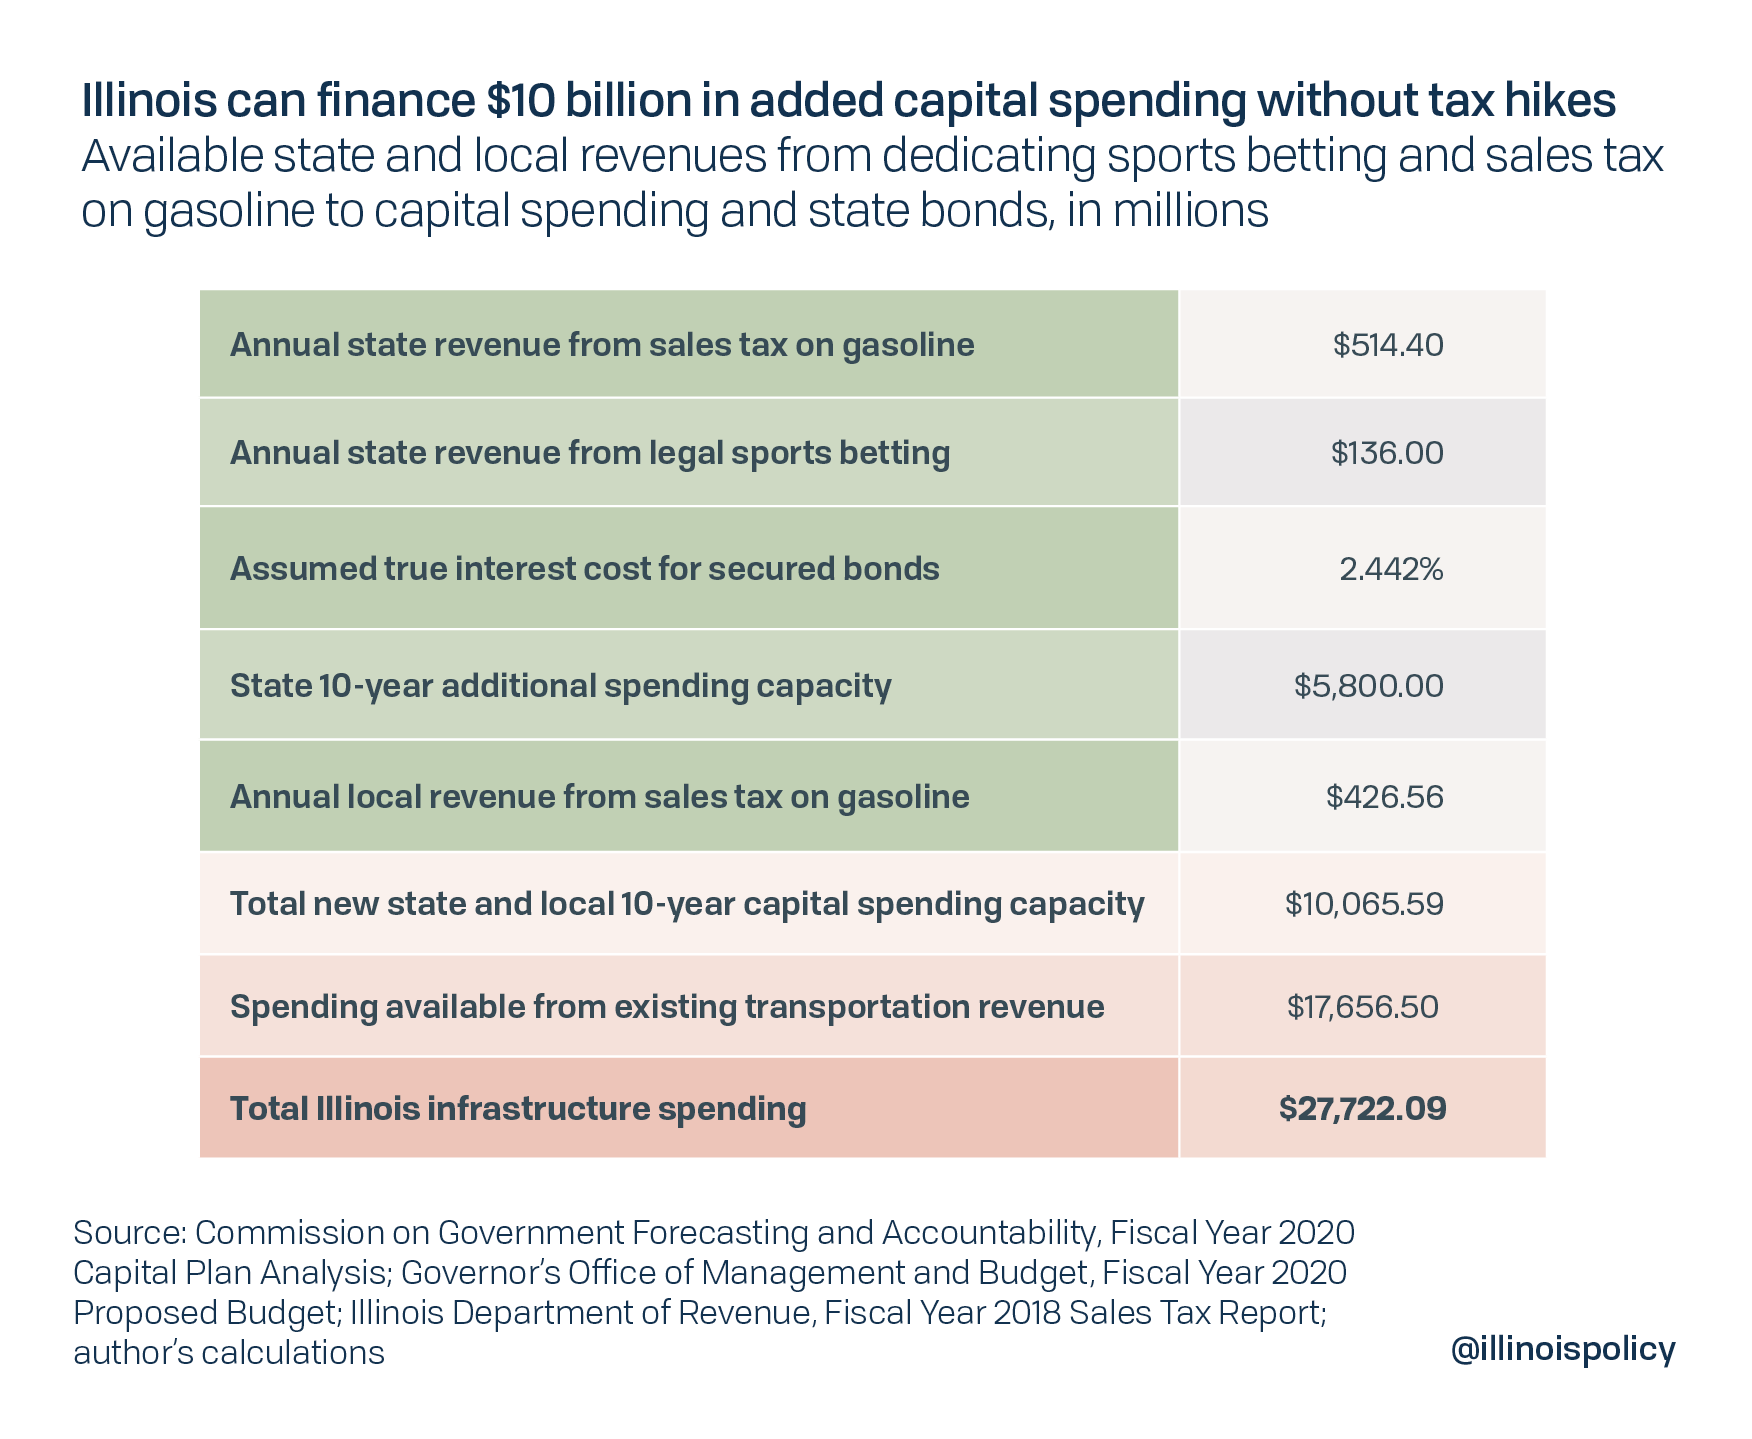 Illinois can finance $10 billion in added capital spending without tax hikes